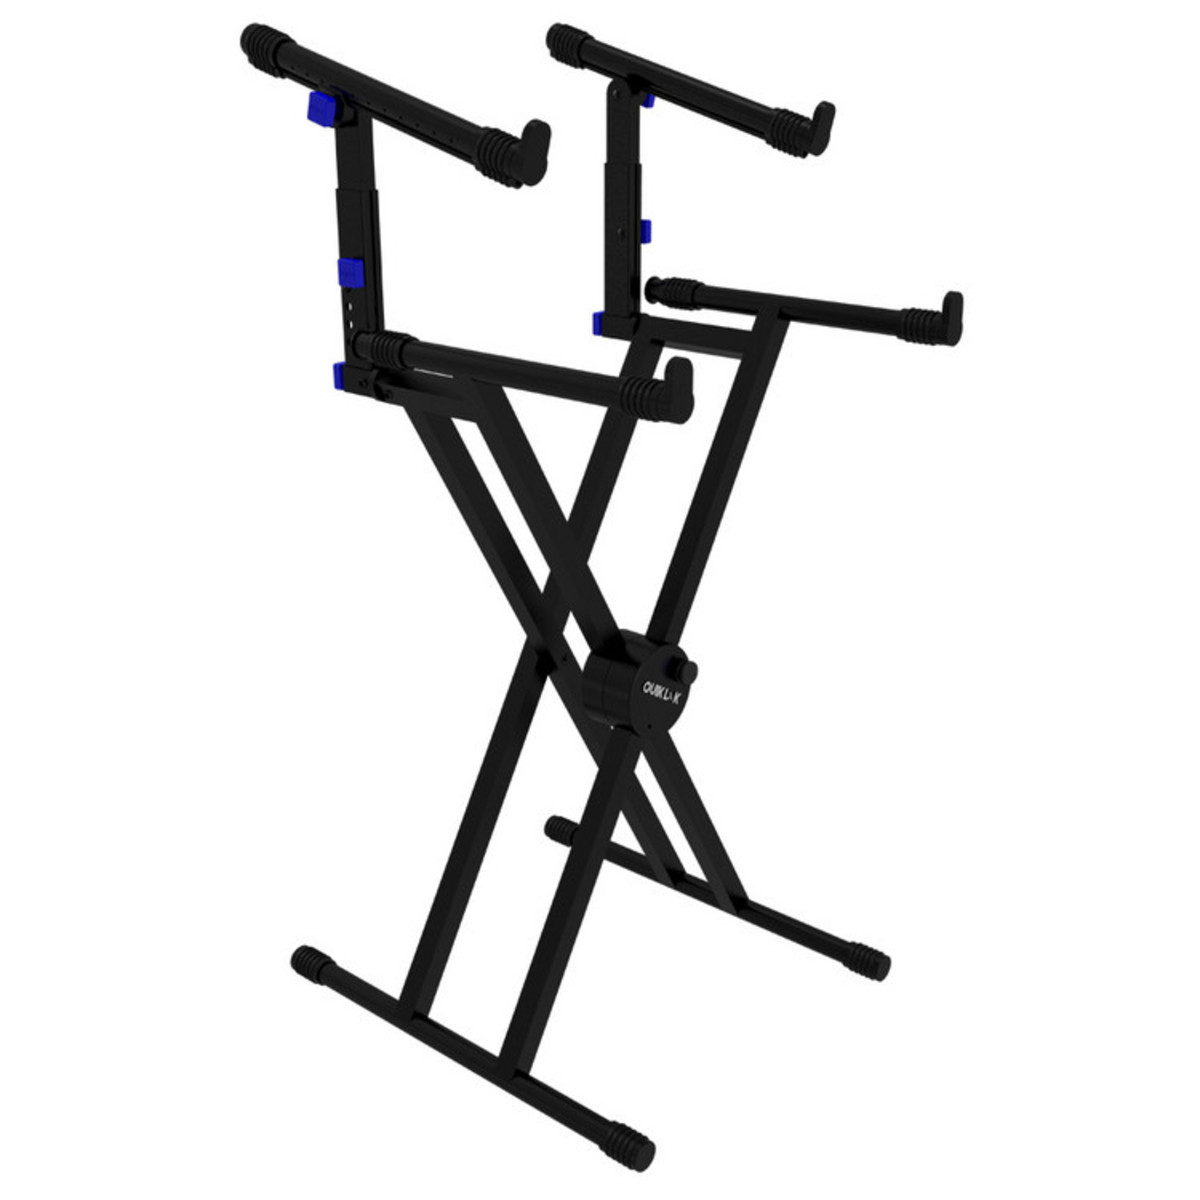 quiklok ql742 heavy duty two tier keyboard stand black nearly new at gear4music. Black Bedroom Furniture Sets. Home Design Ideas